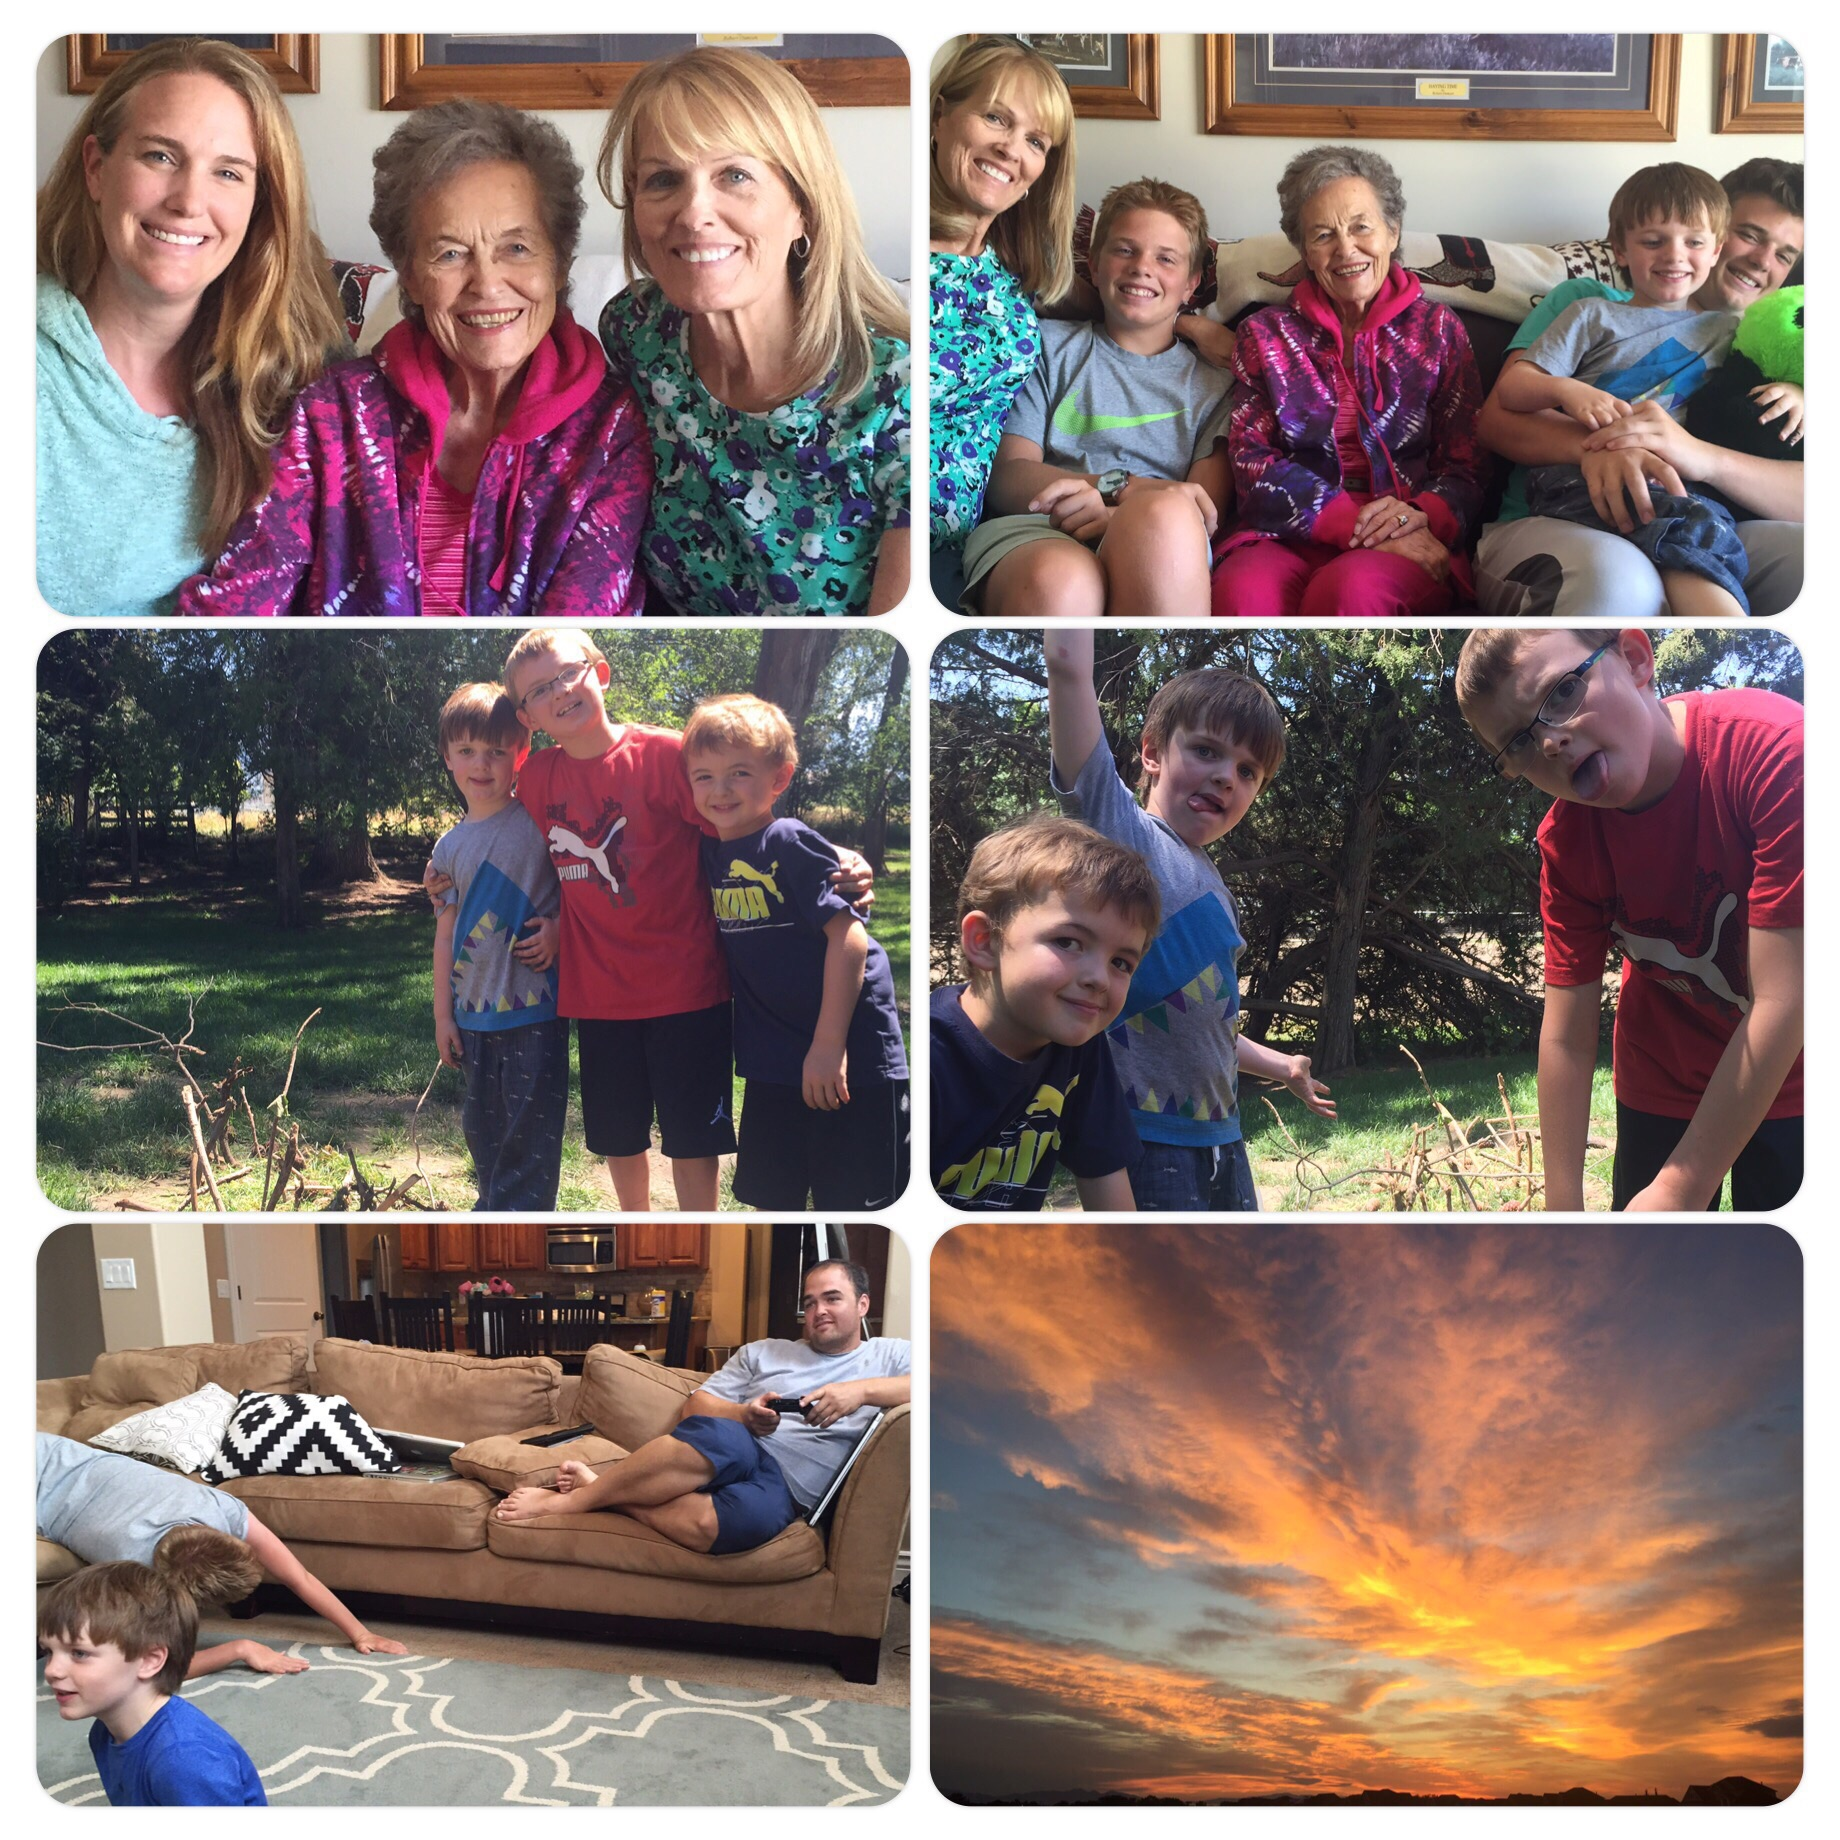 Last few visits with Grandma Great, the cousins, and a spectacular farewell sunset. 8.3.15